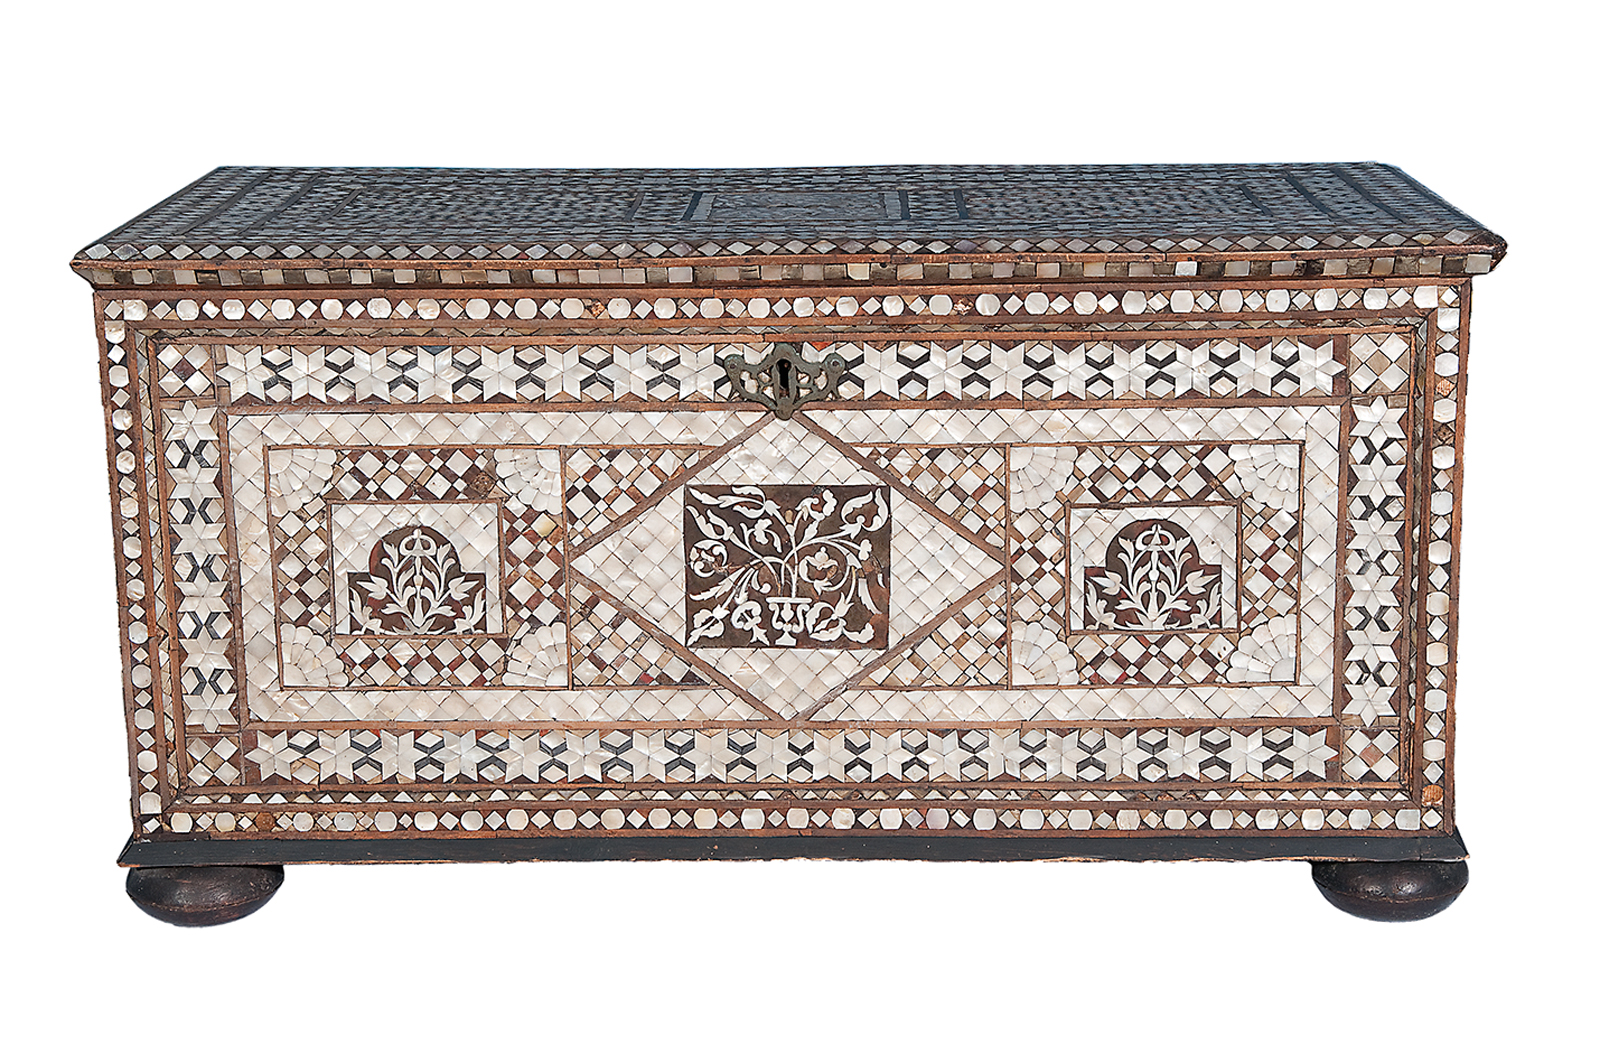 The Art Of The Dowry Chest Aramcoworld